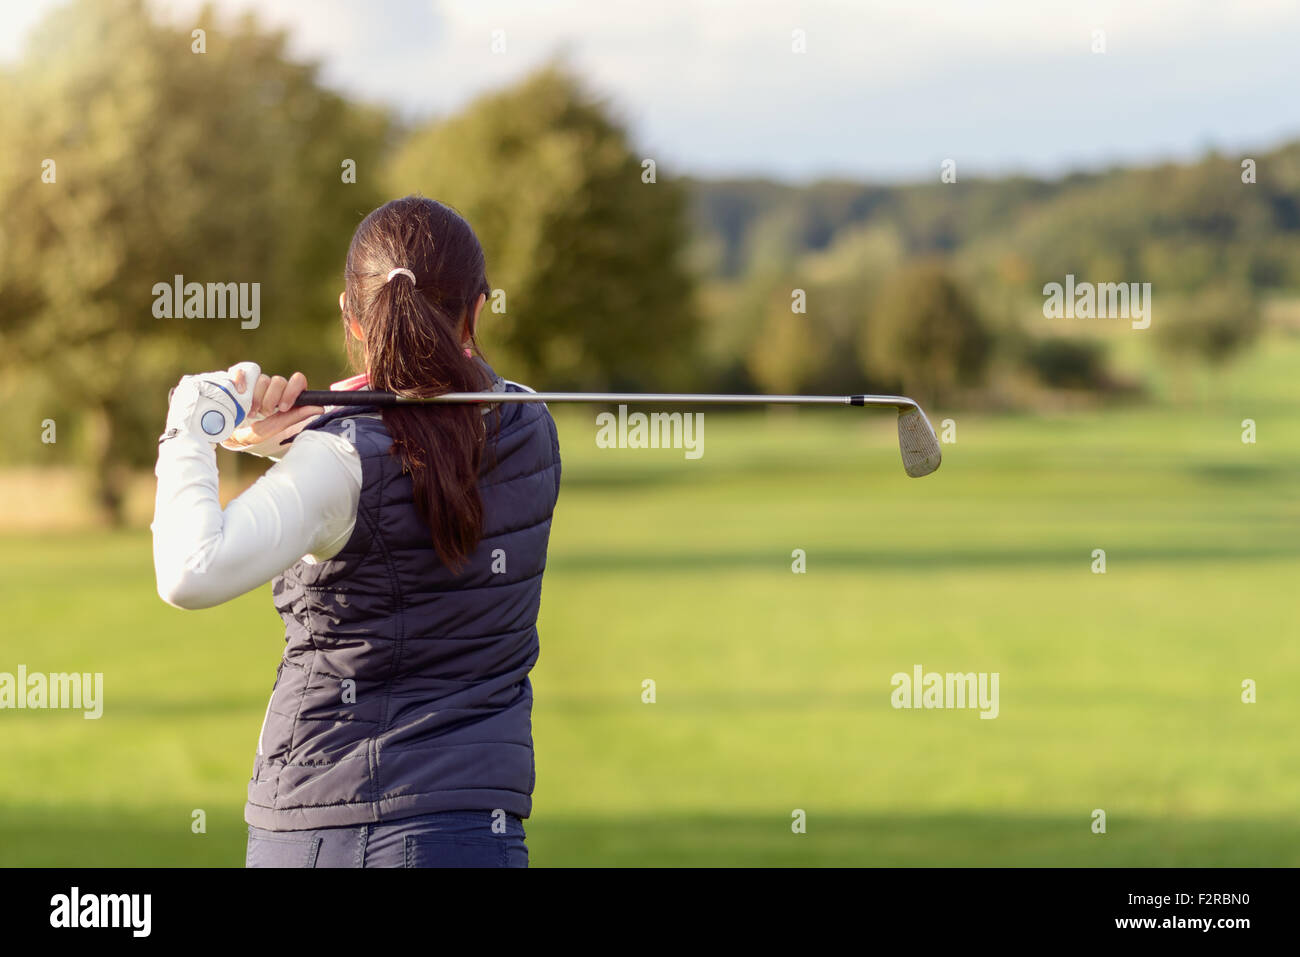 Female golfer striking a golf ball on a golf course, half body rear view looking down the golf course - Stock Image